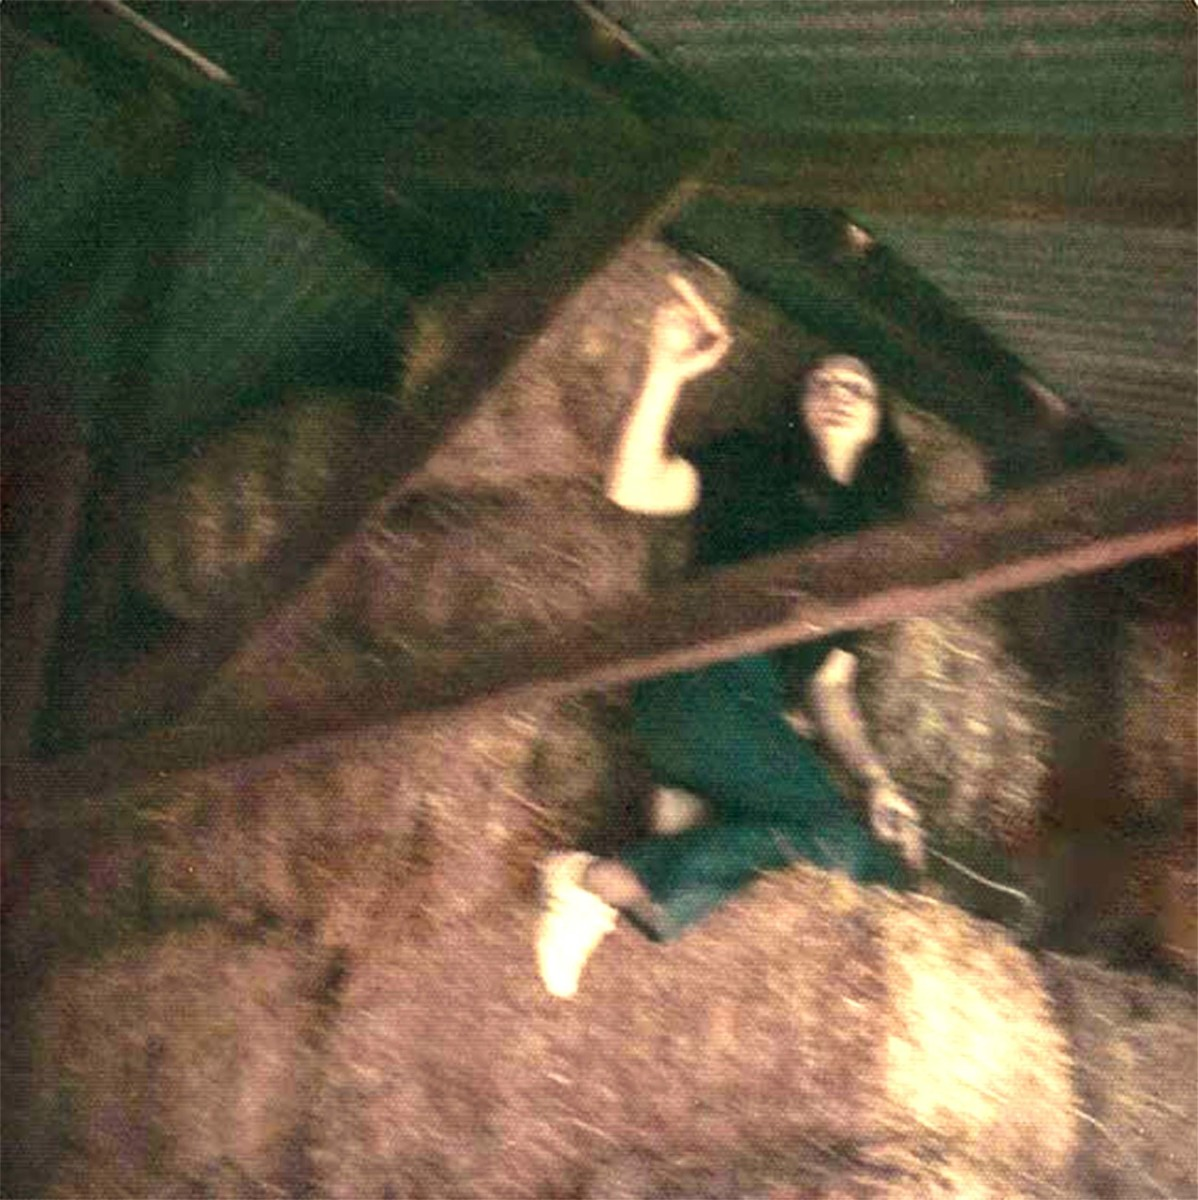 My job to feed the horses meant I had to climb into the rafters to pull a bail of hay down.